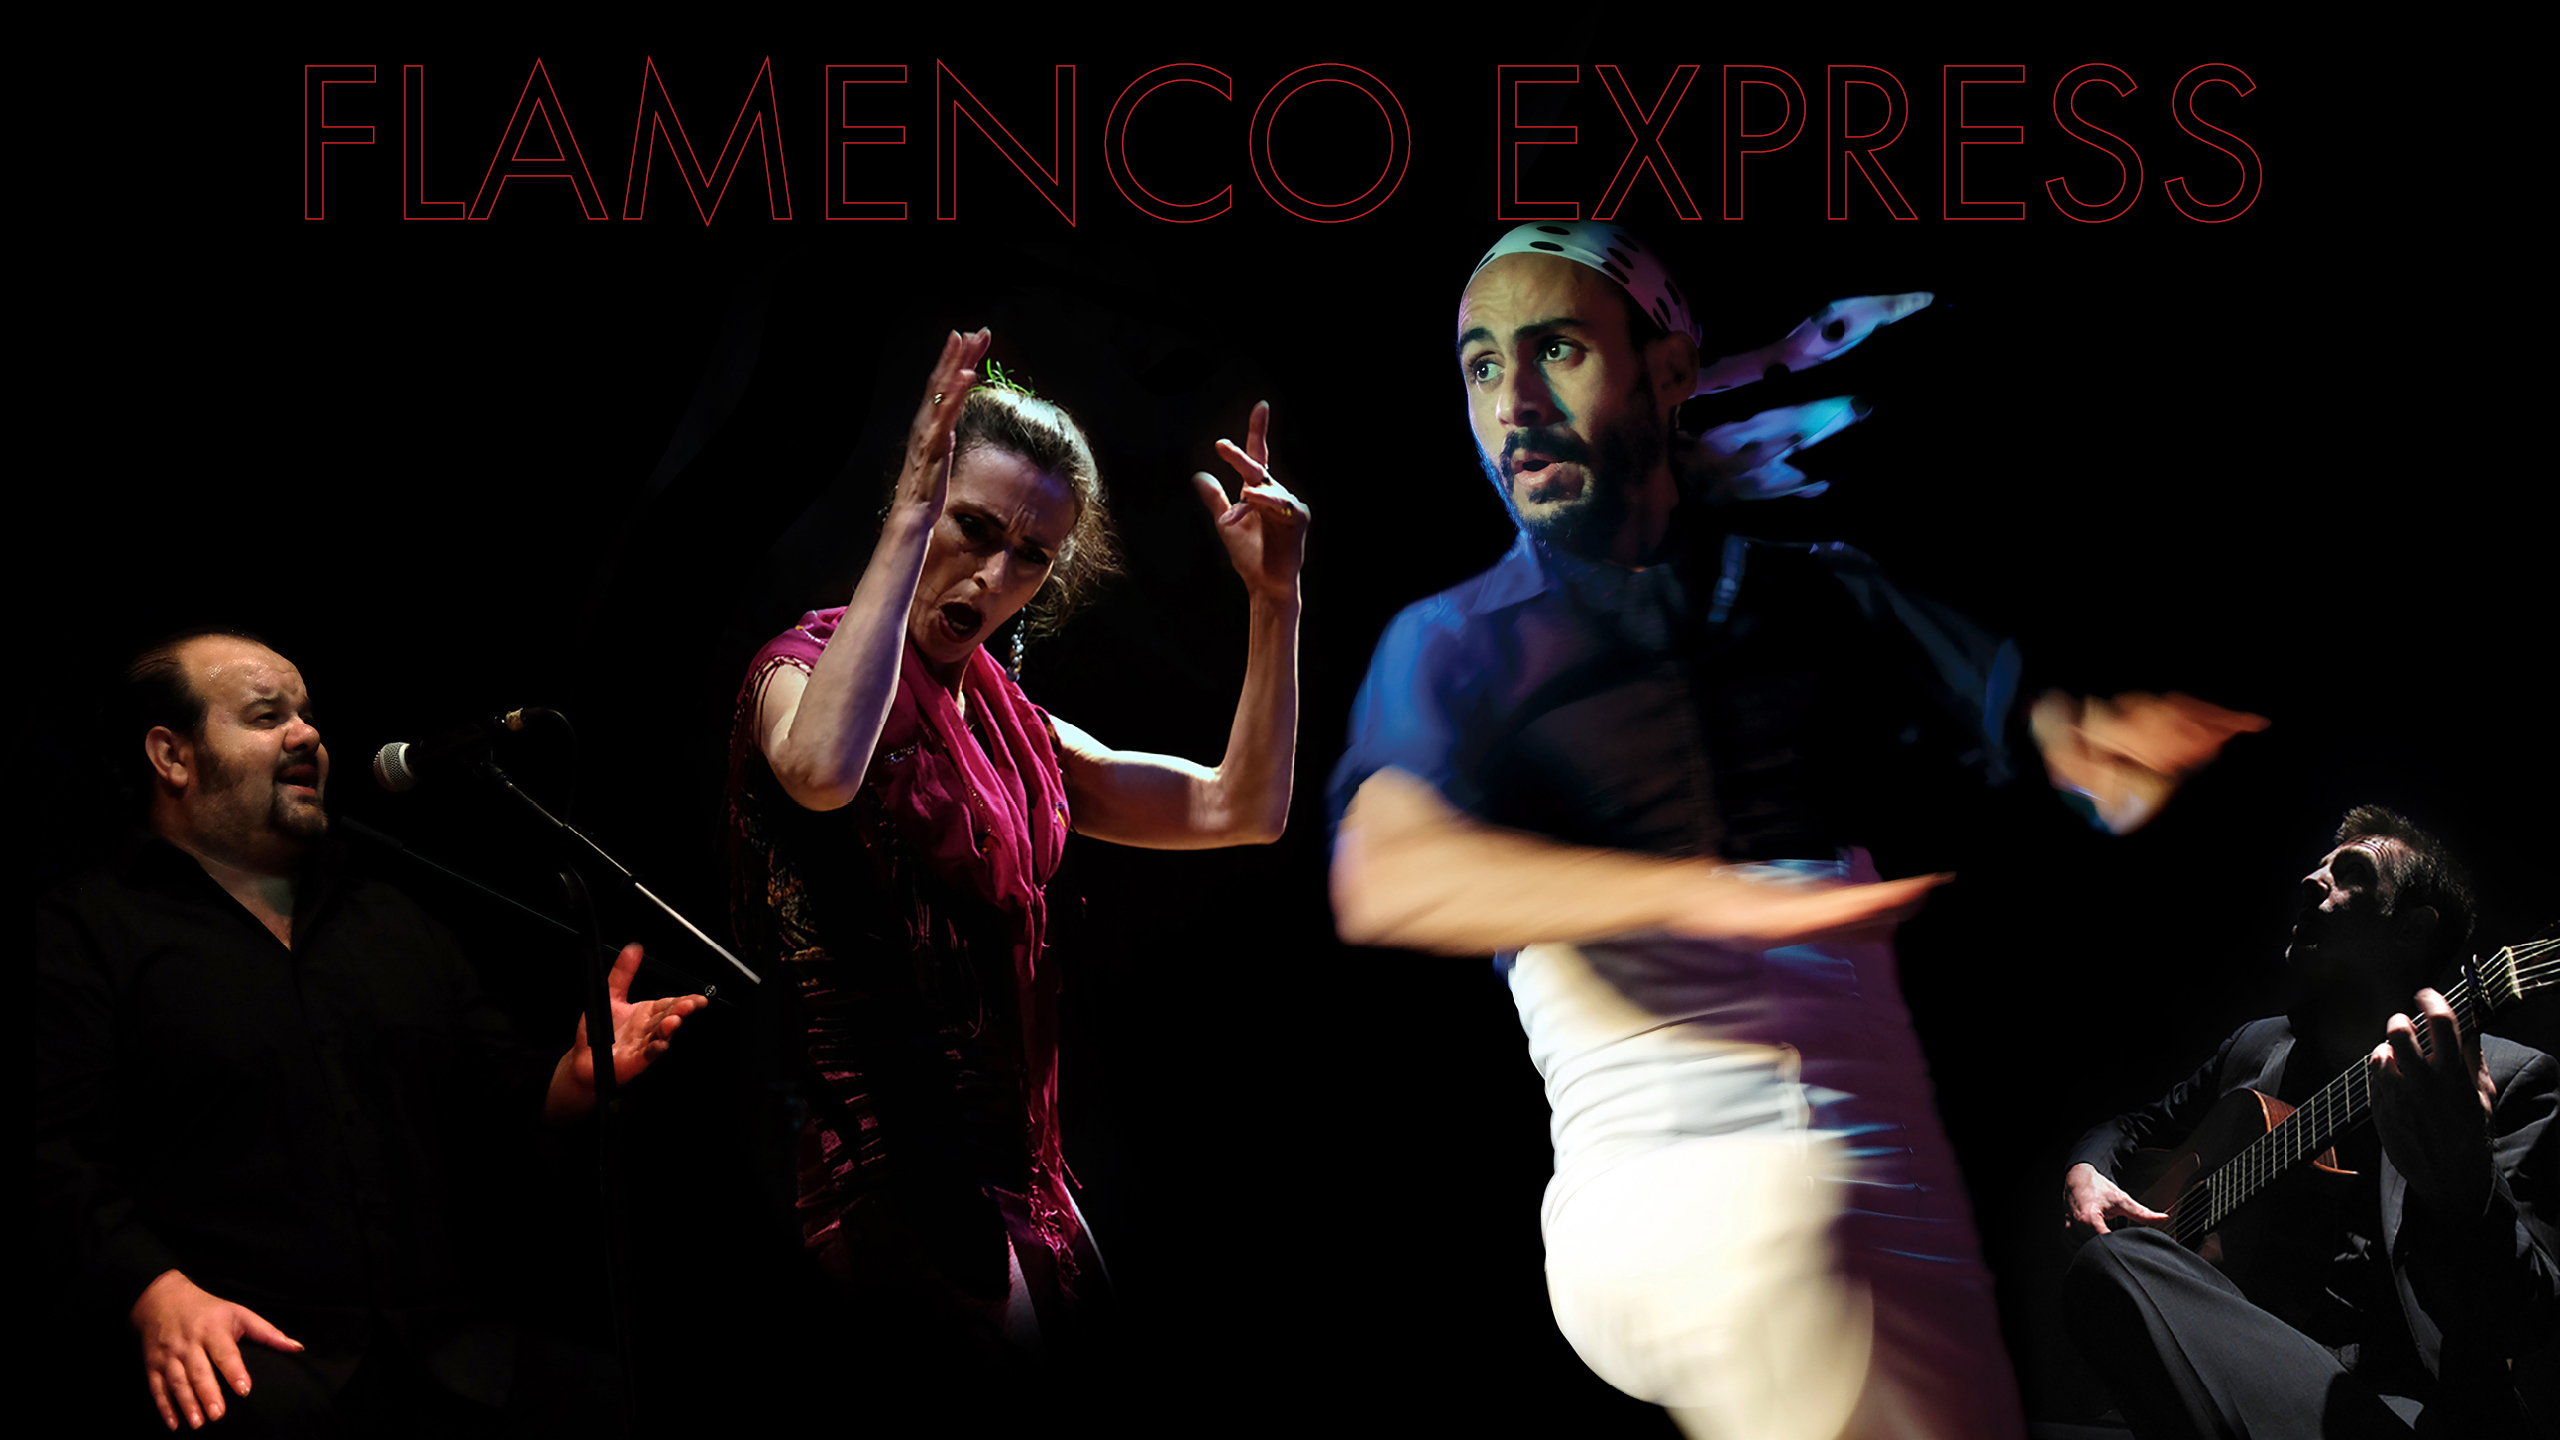 Flamenco Express